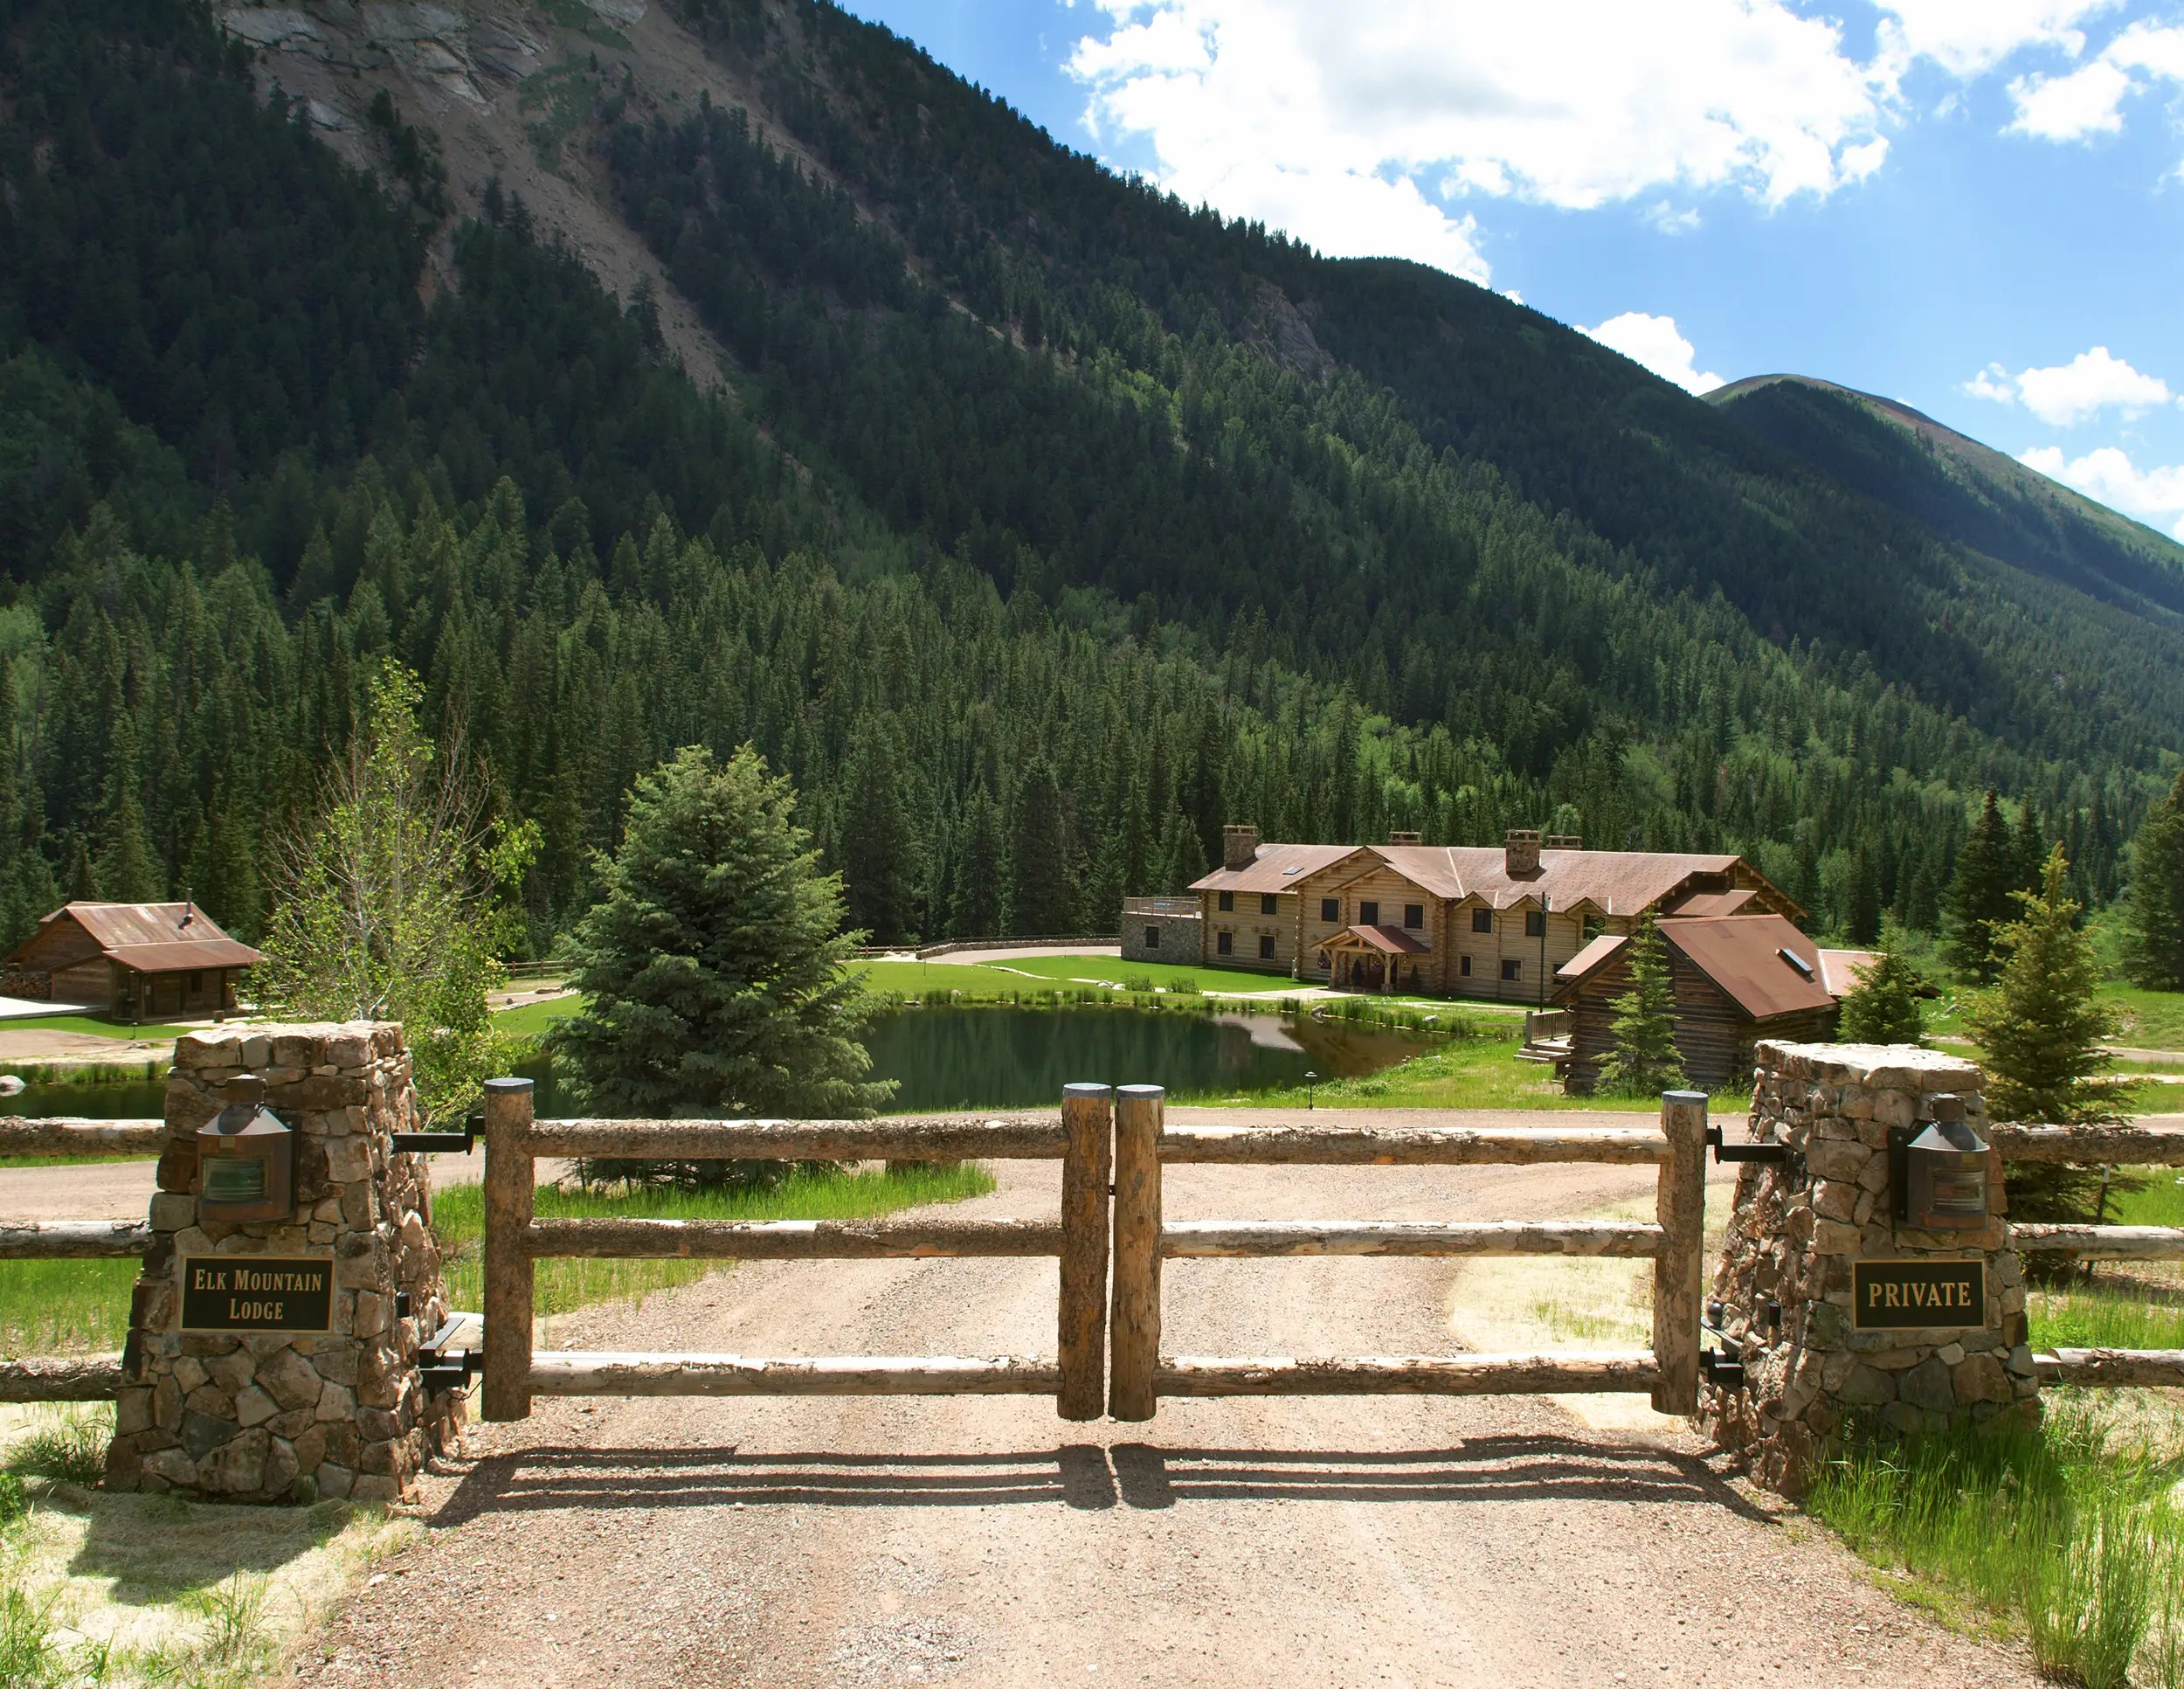 The property is gated and private.